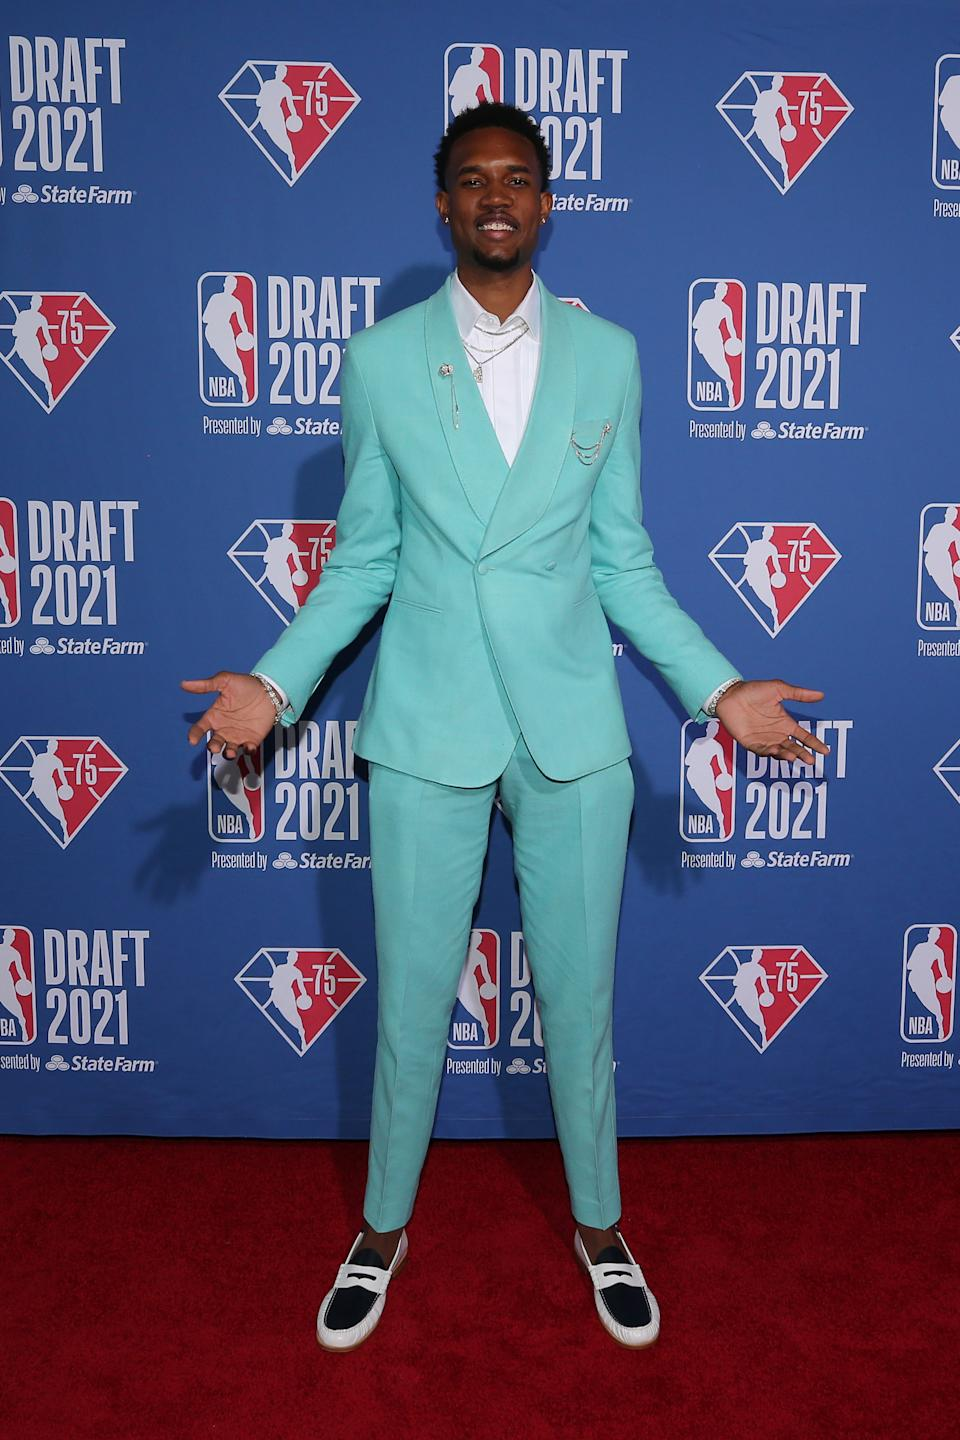 Evan Mobley arrives on the red carpet before the 2021 NBA draft at Barclays Center. (Brad Penner/USA TODAY Sports)